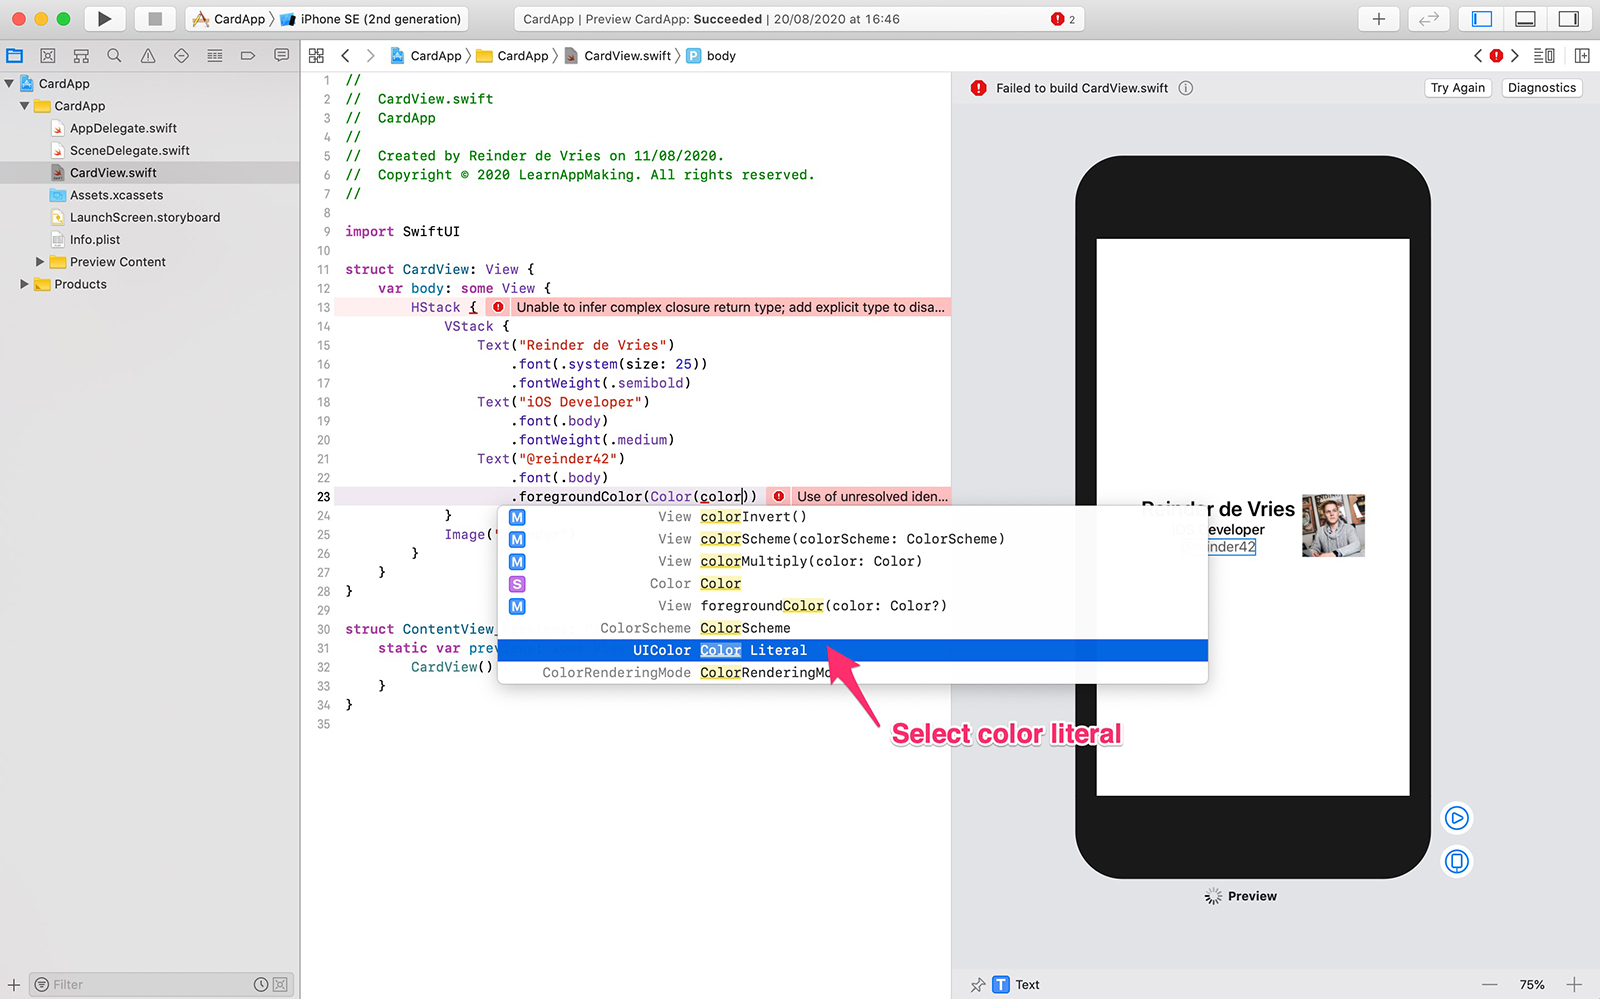 Xcode color literal for SwiftUI